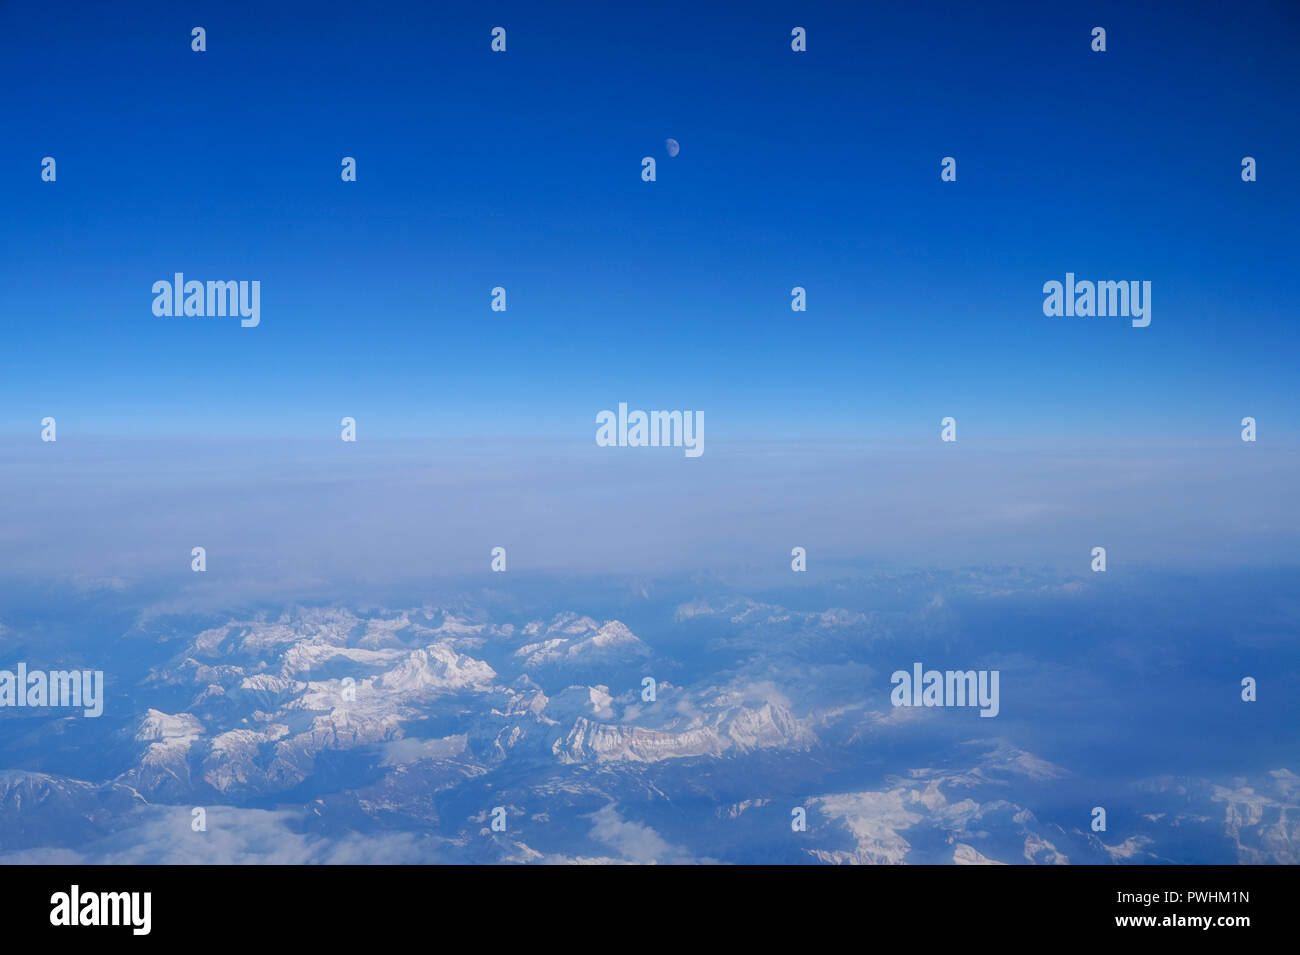 Sky over the Swiss Alps with moon over top - Stock Image